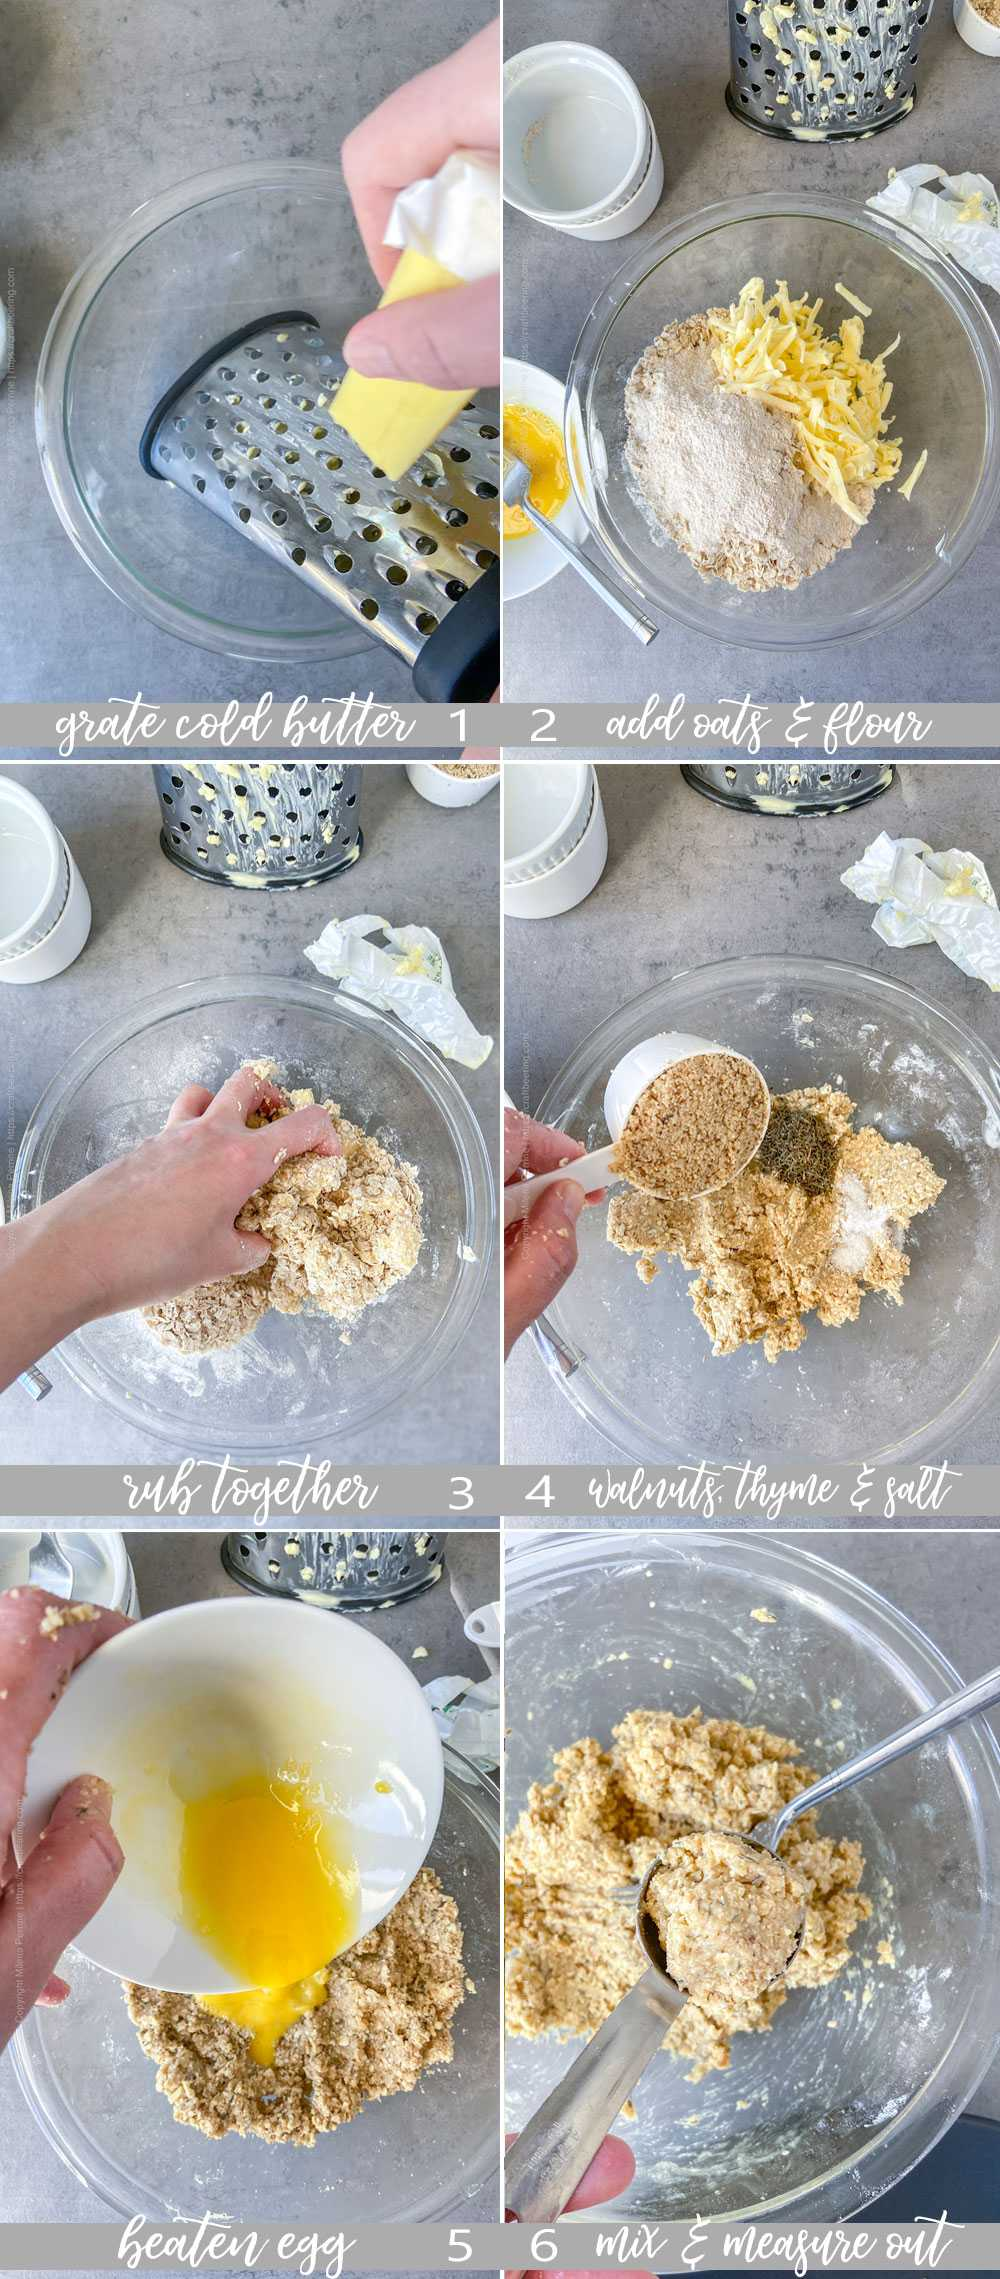 Step by step make oatcakes from scratch. Perfect for cheese boards.